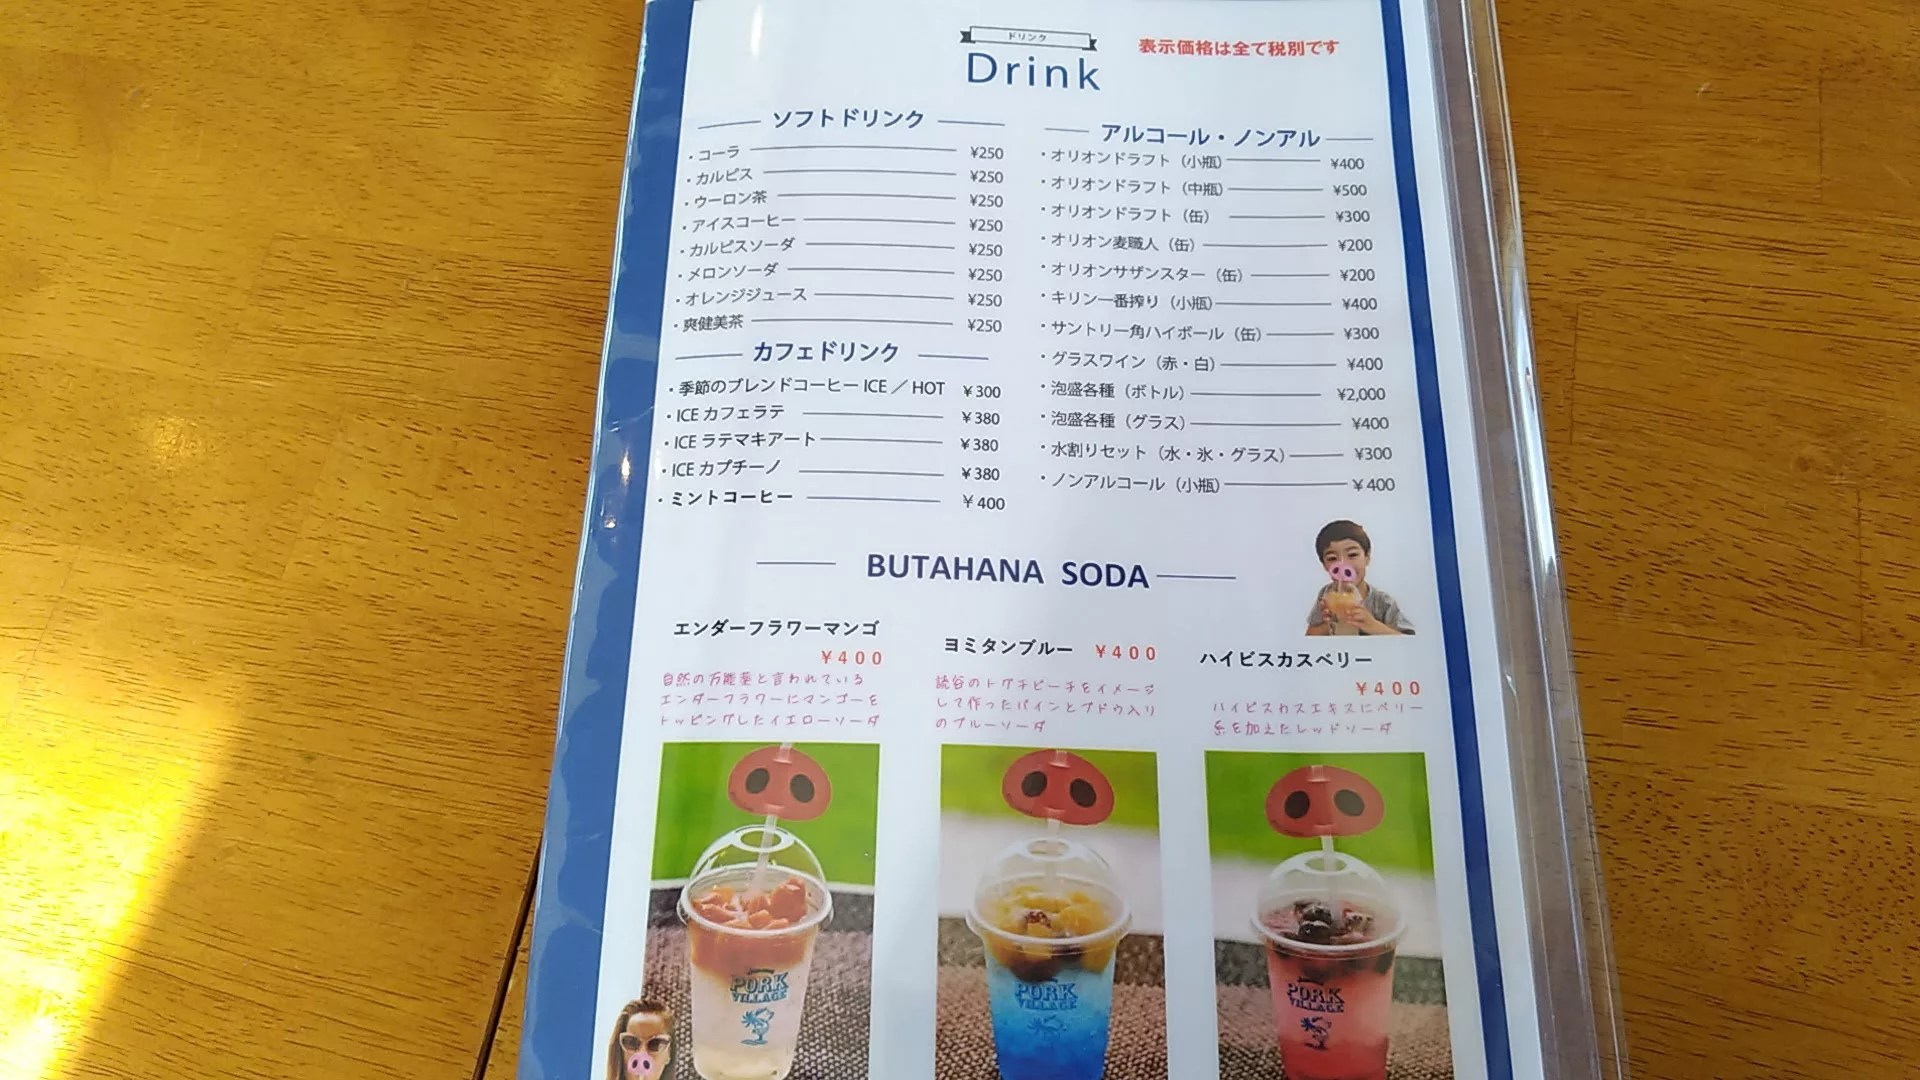 the drink menu of Okinawa pork village